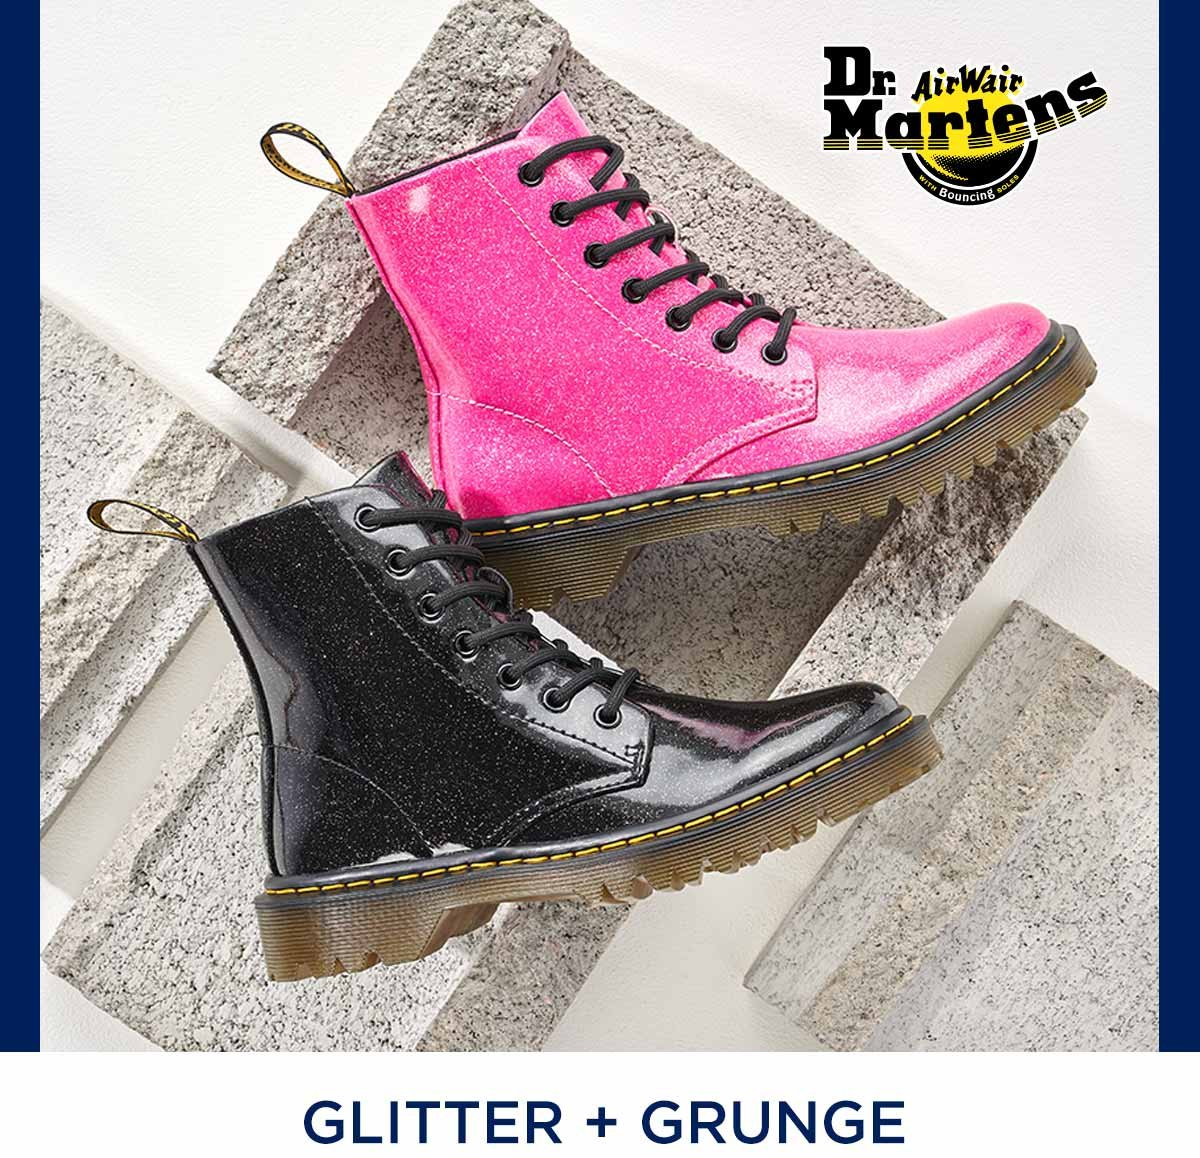 GLITTER + GRUNGE DR. MARTENS IN BLACK AND HOT PINK